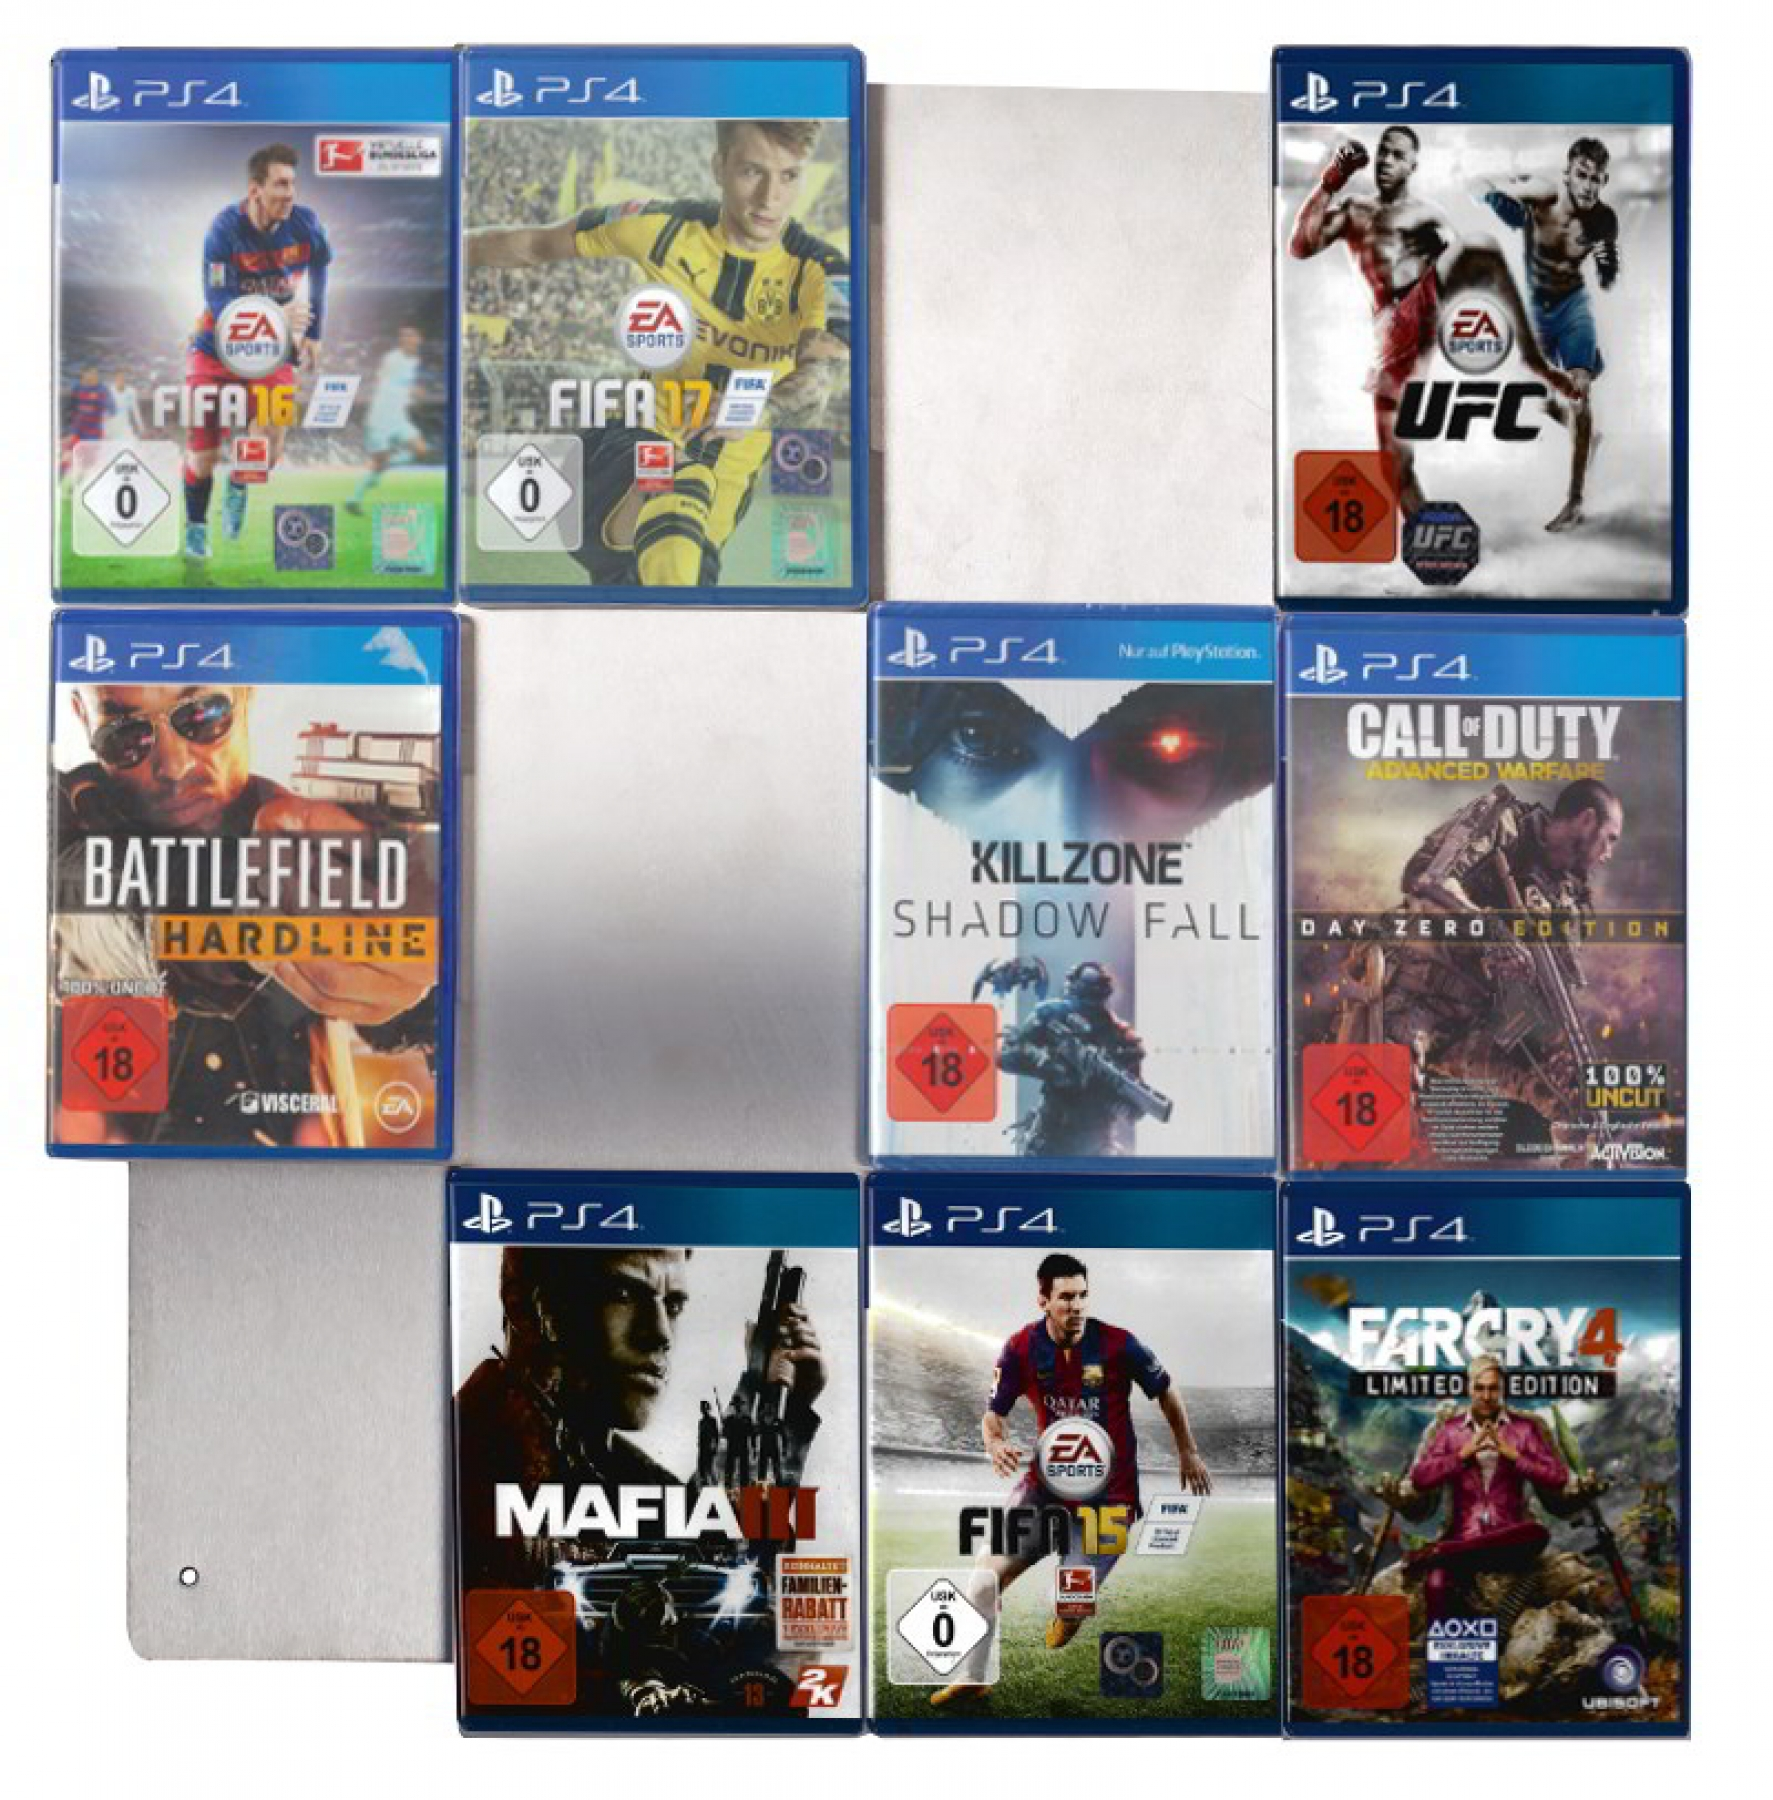 he picture shows the front view of a CD-Wall4x3 with 12 PS4 games fitted